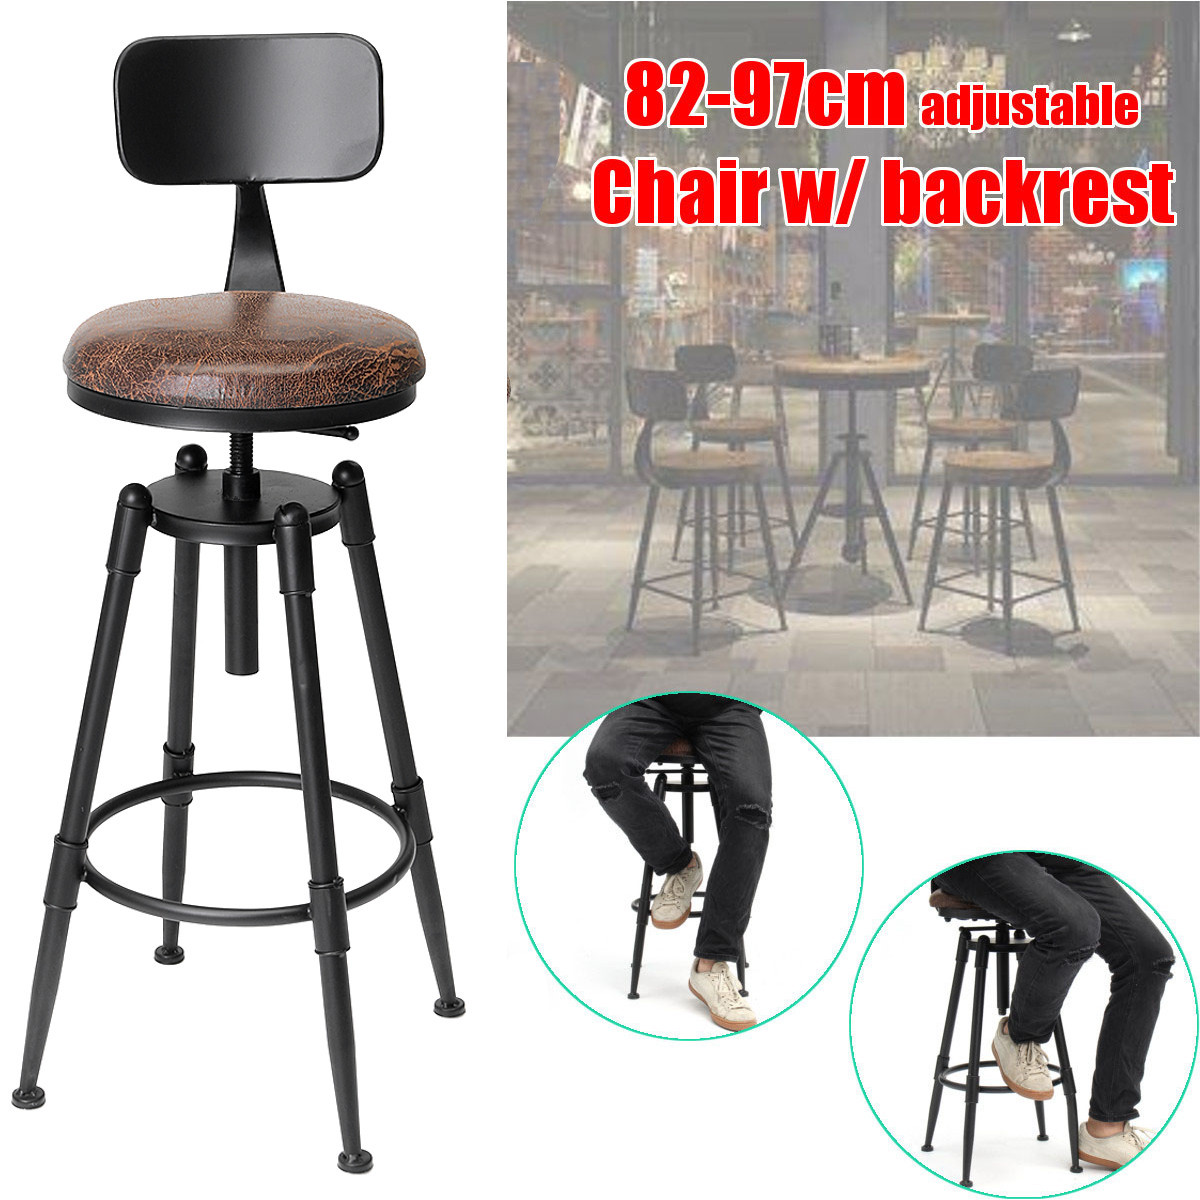 Adjustable Industrial Dining Chairs High Chair Bar chair Retro Iron leather Anti-slip Rotate ergonomic backrest Home FurnitureAdjustable Industrial Dining Chairs High Chair Bar chair Retro Iron leather Anti-slip Rotate ergonomic backrest Home Furniture